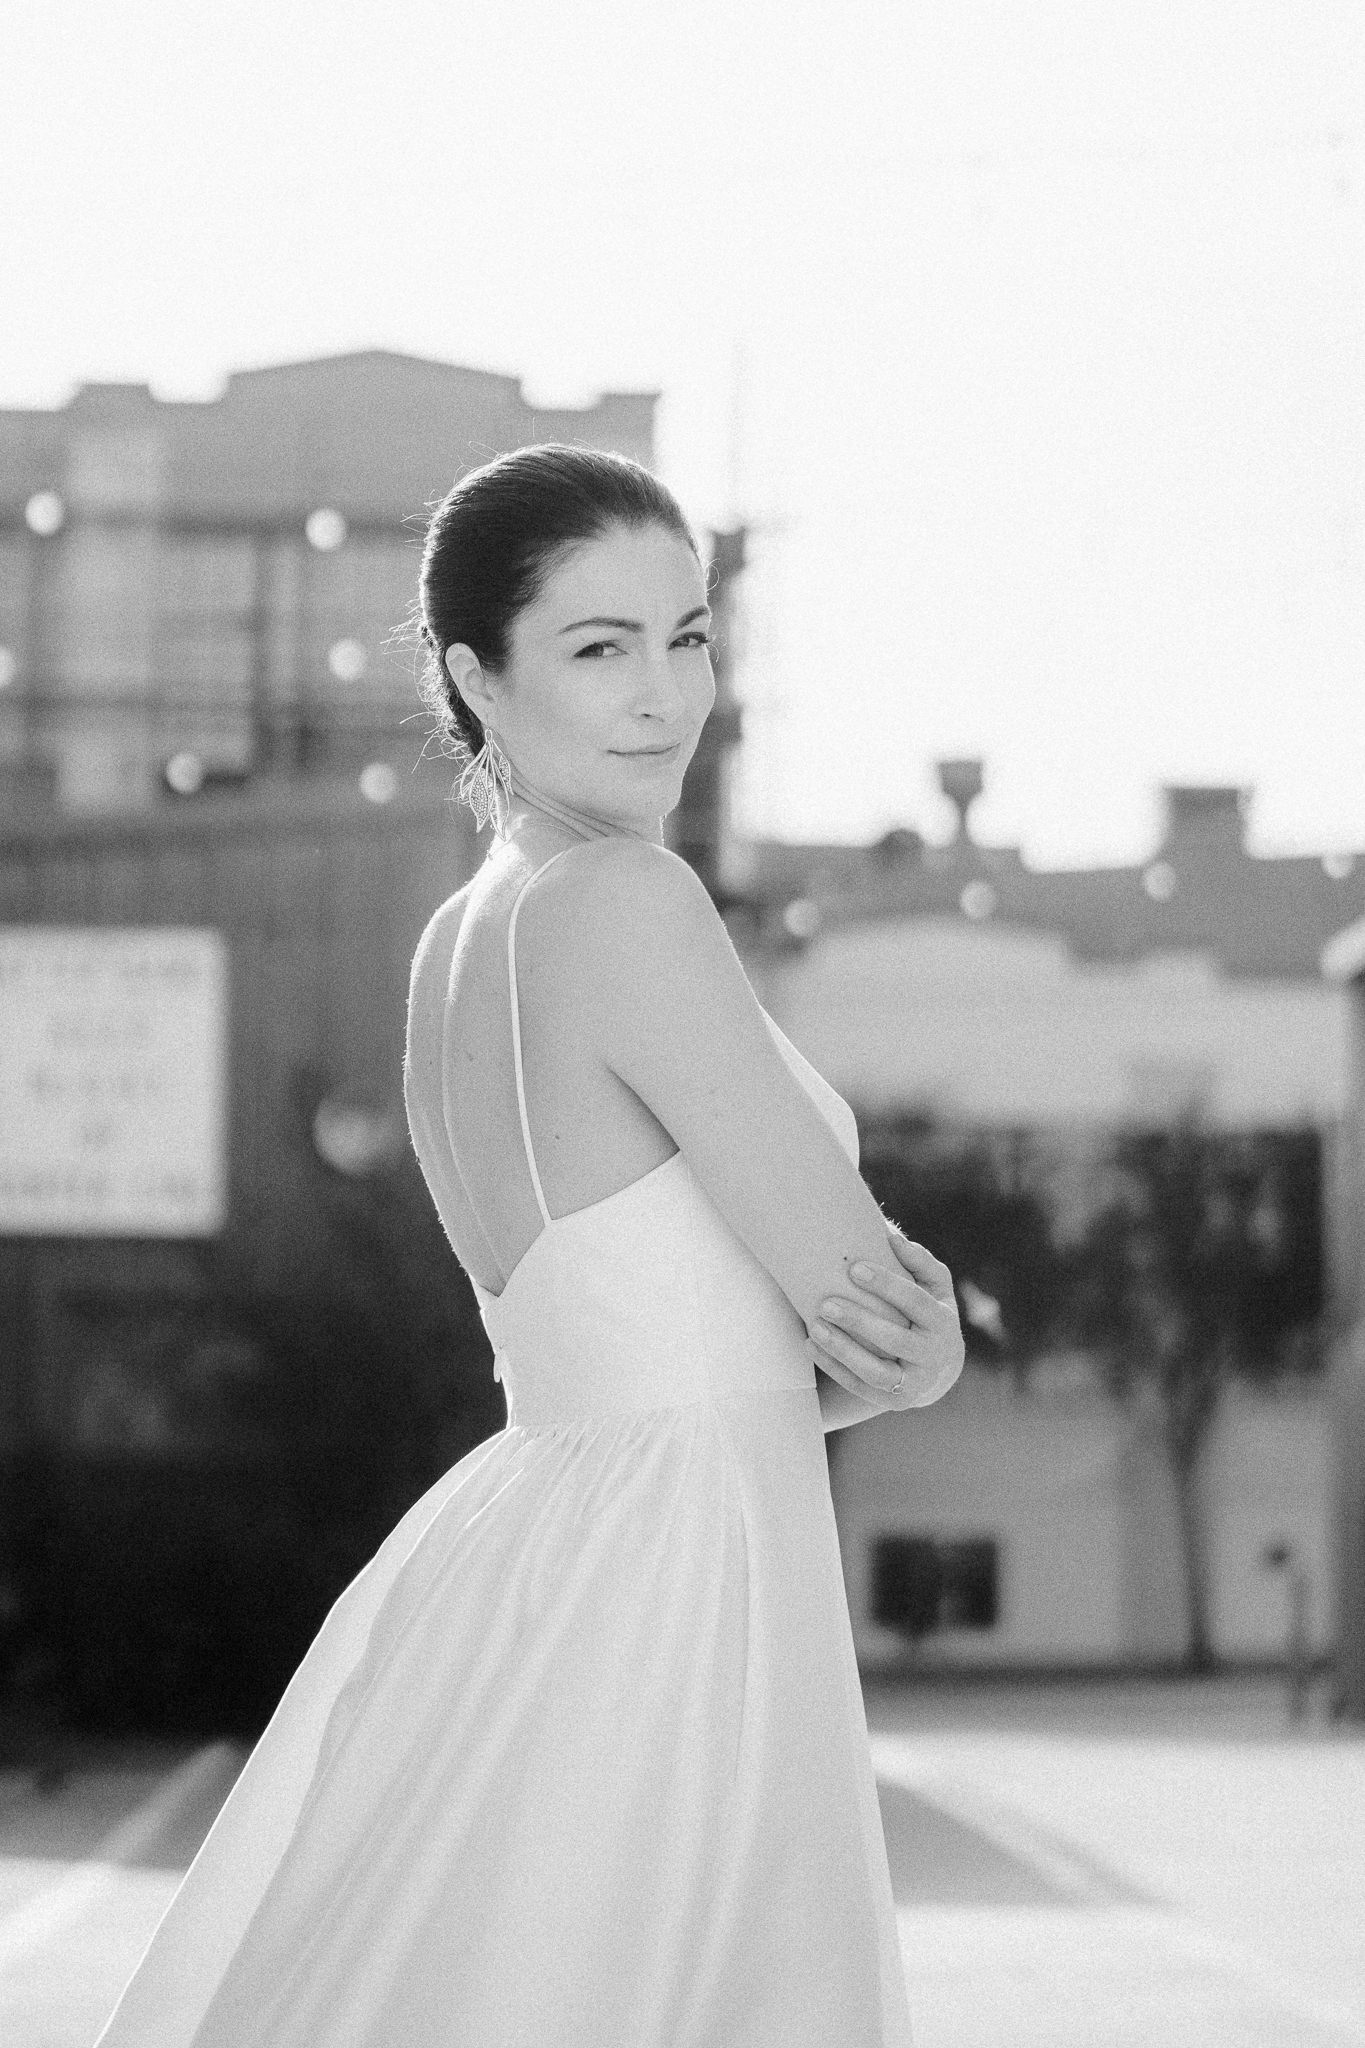 black and white portrait of a bride in san francisco streets.